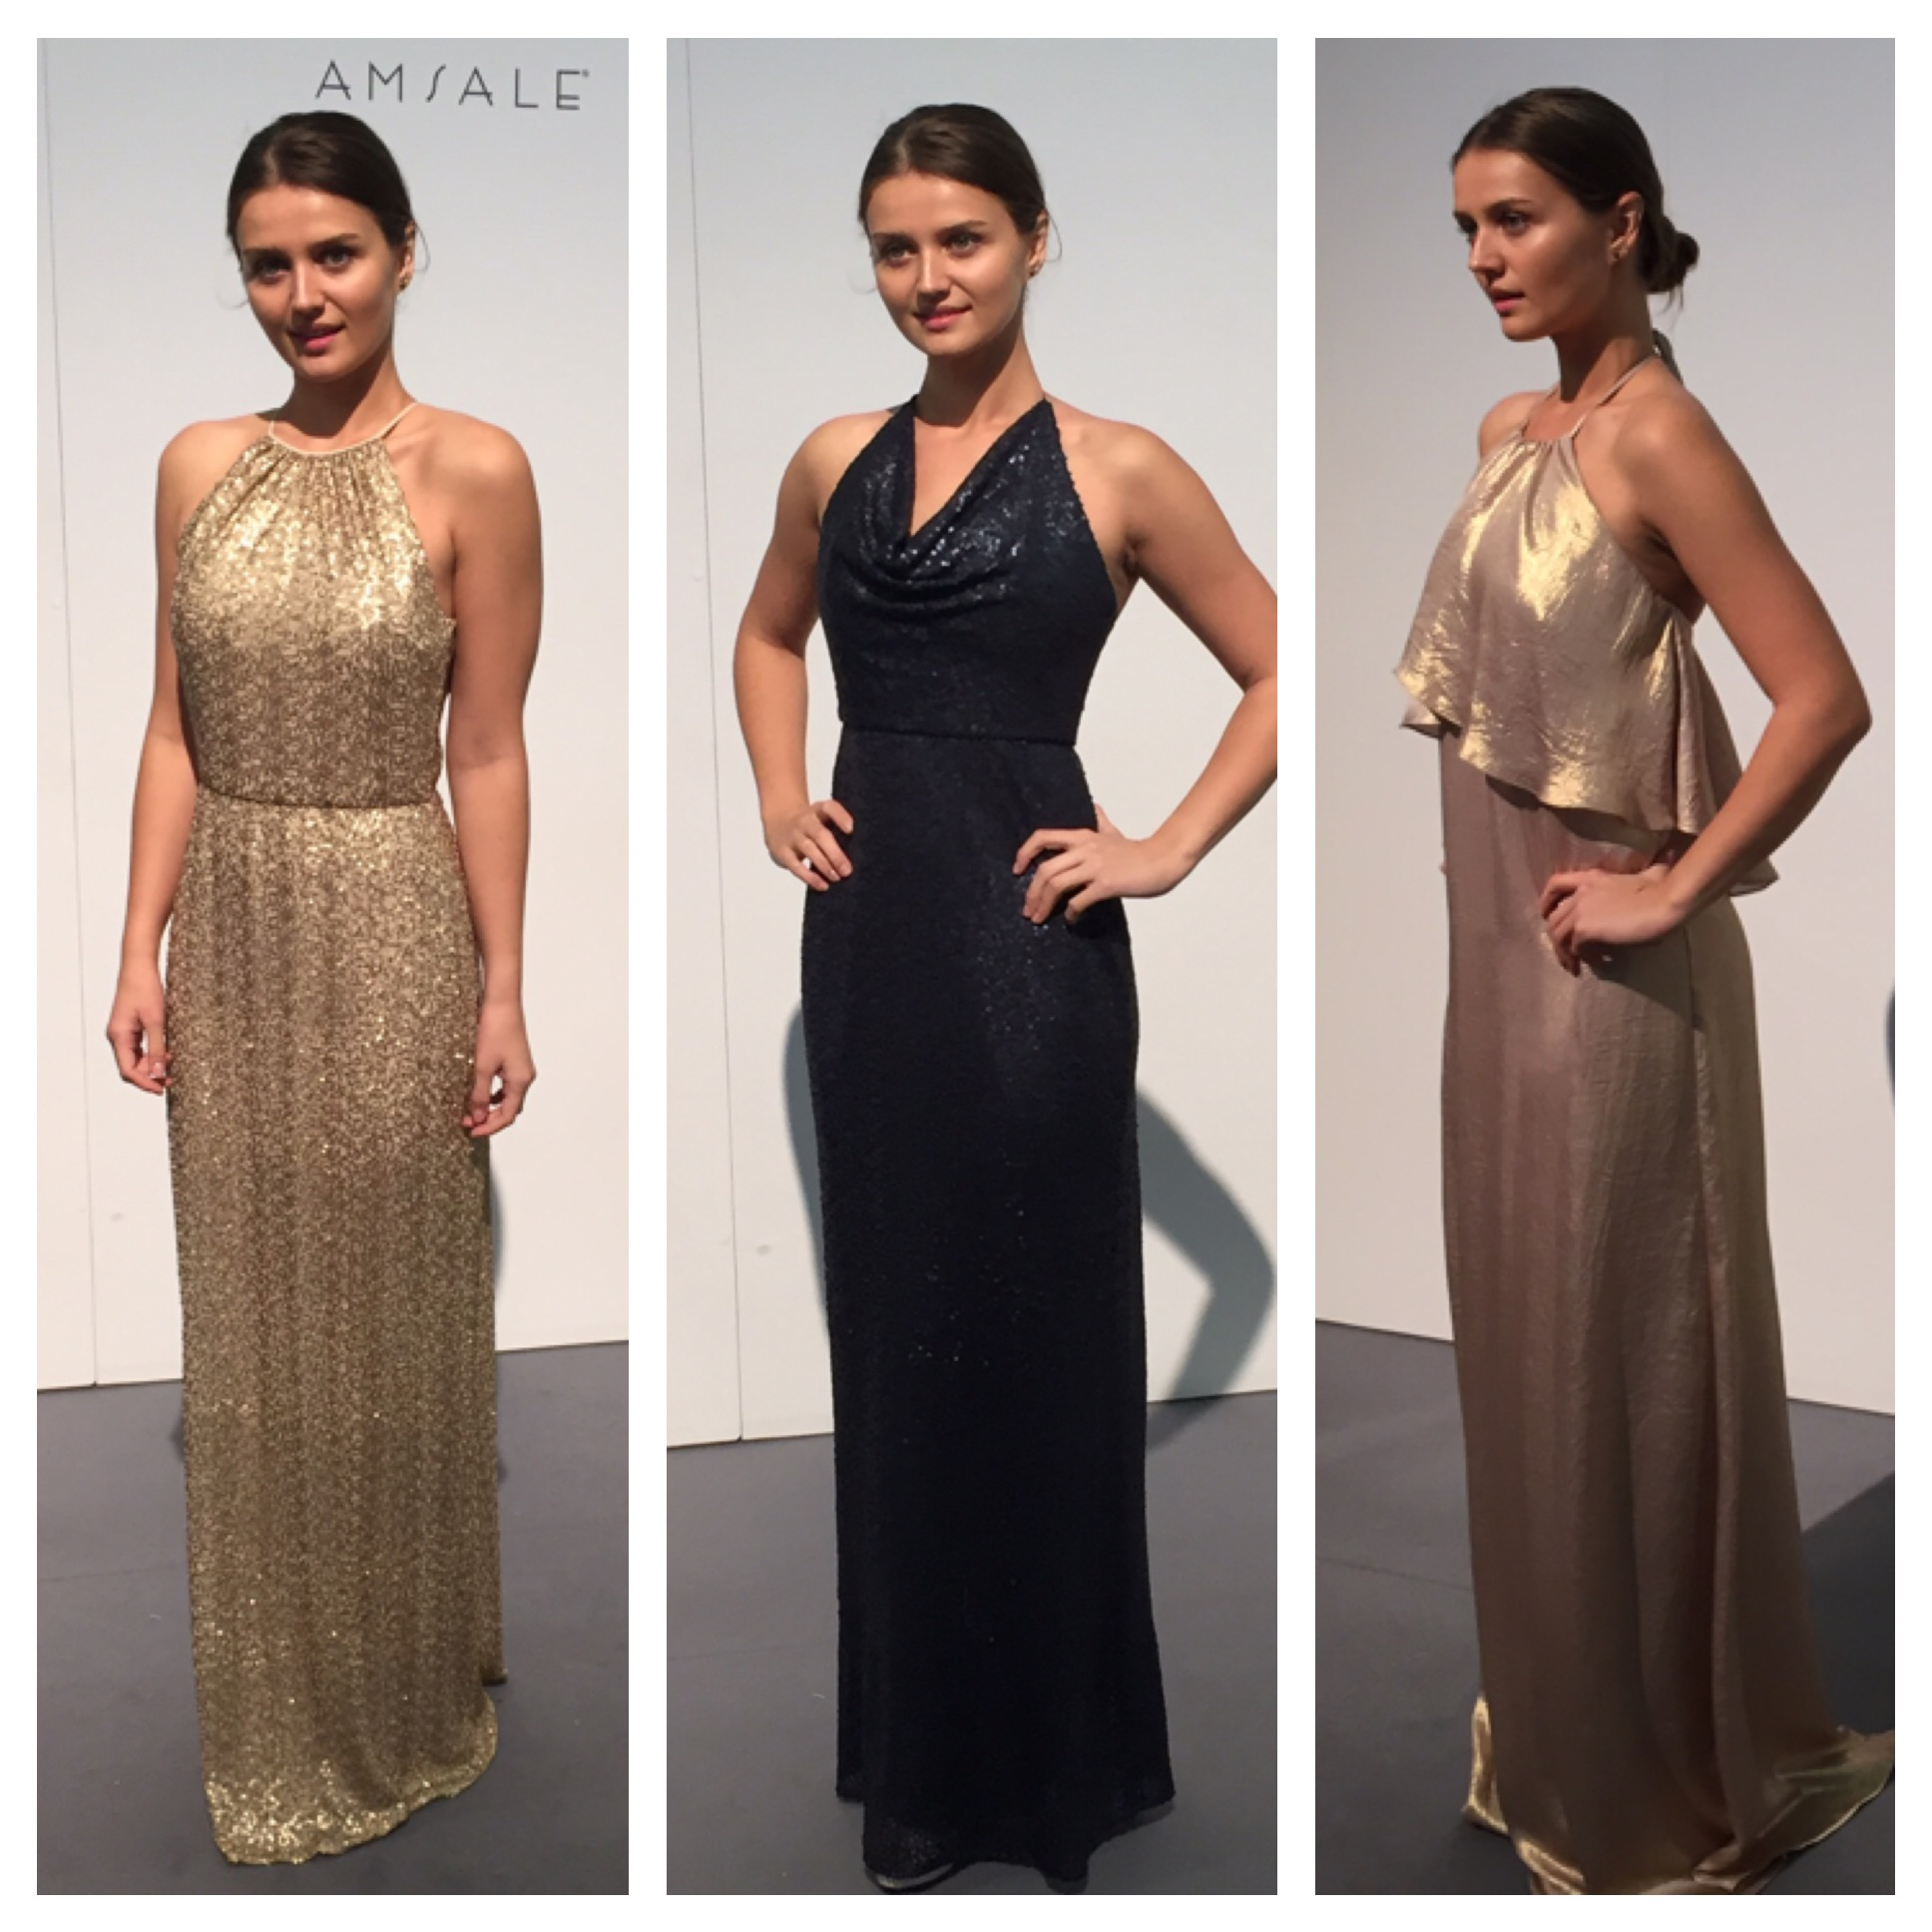 Amsale styles from left to right, G977Q, G975Q, and Nouvelle N347.